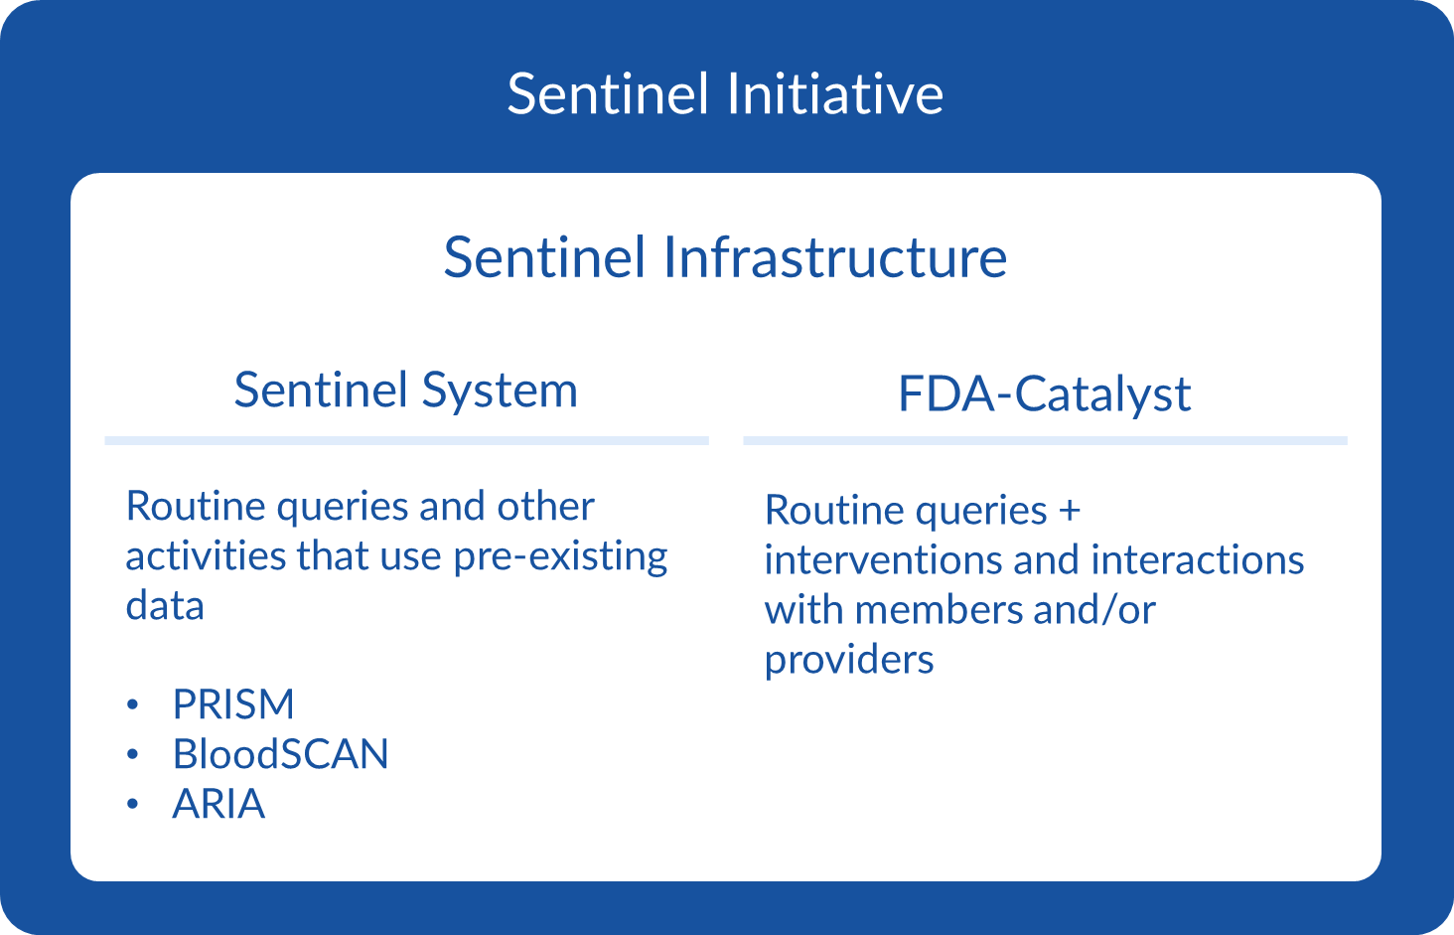 Diagram depicting the Sentinel Initiative and Sentinel Infrastructure relationship